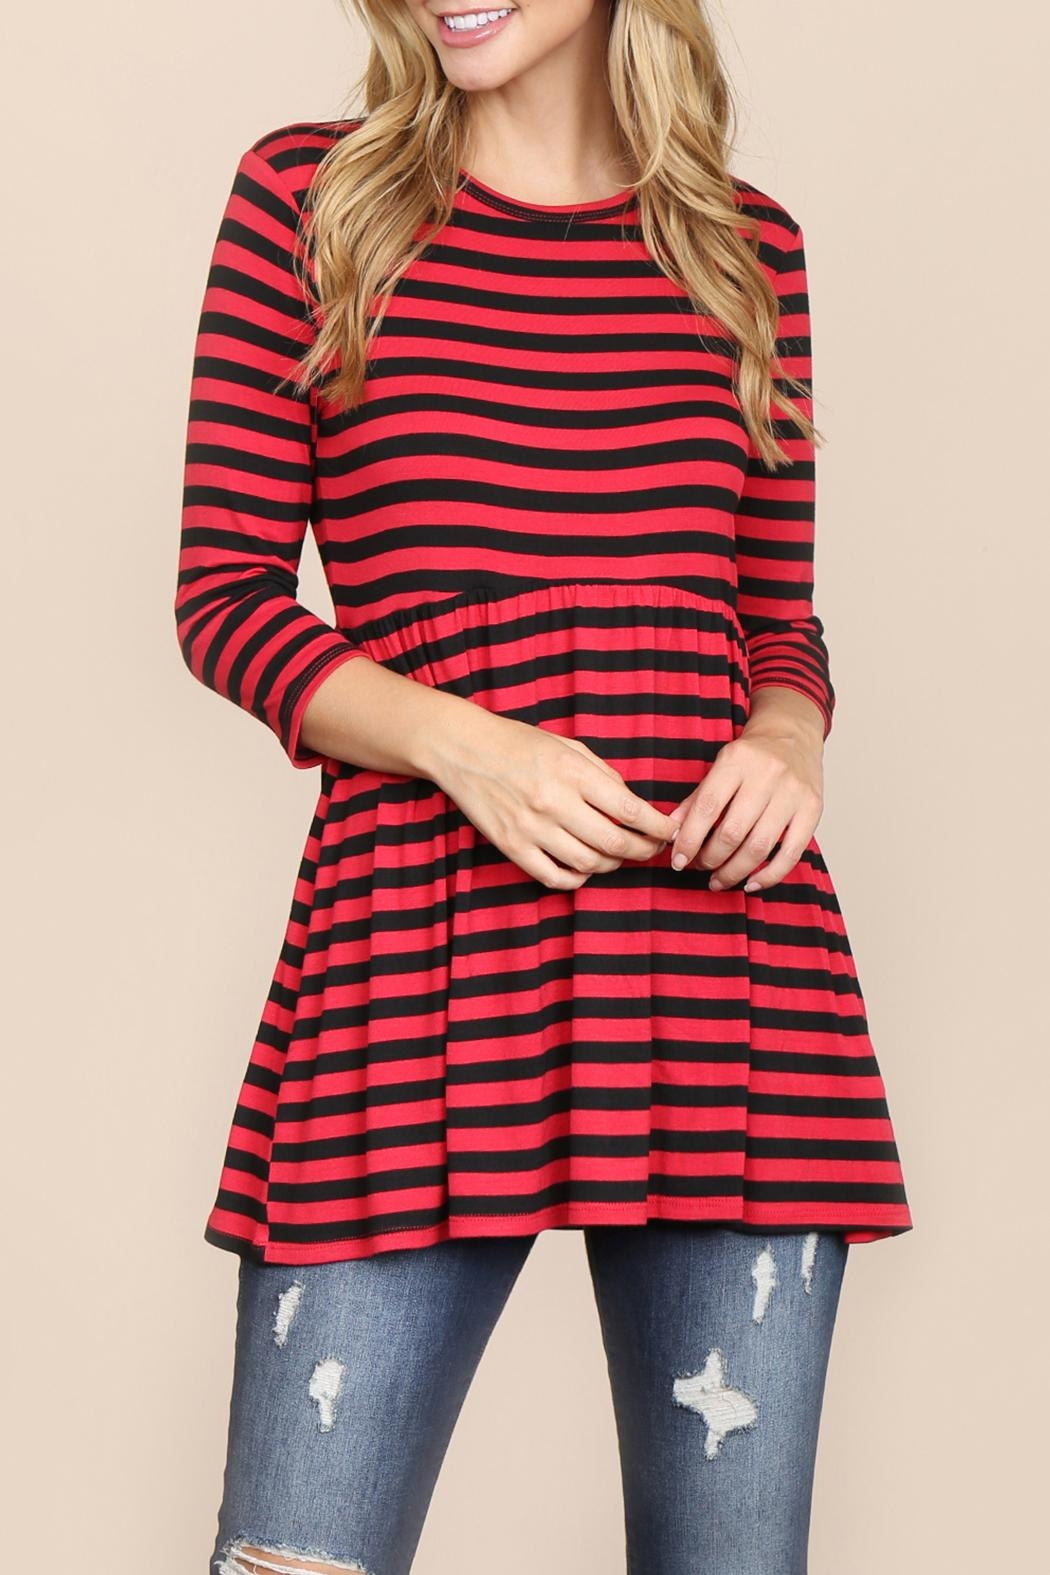 Riah Fashion Quarter-Sleeve Babydoll-Striped-Tunic - Front Cropped Image